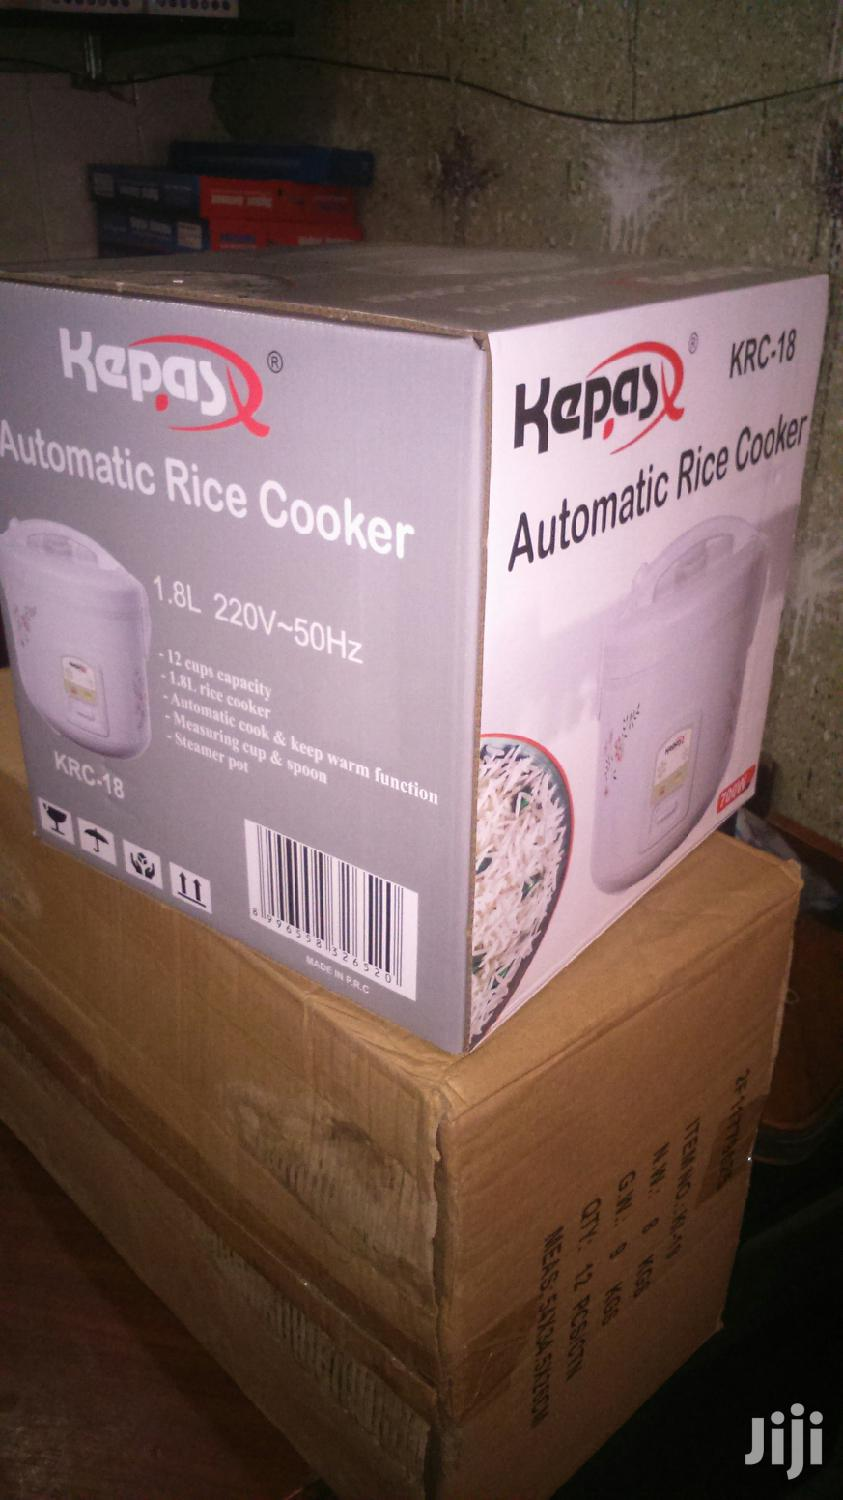 Kepas Automatic Rice Cooker